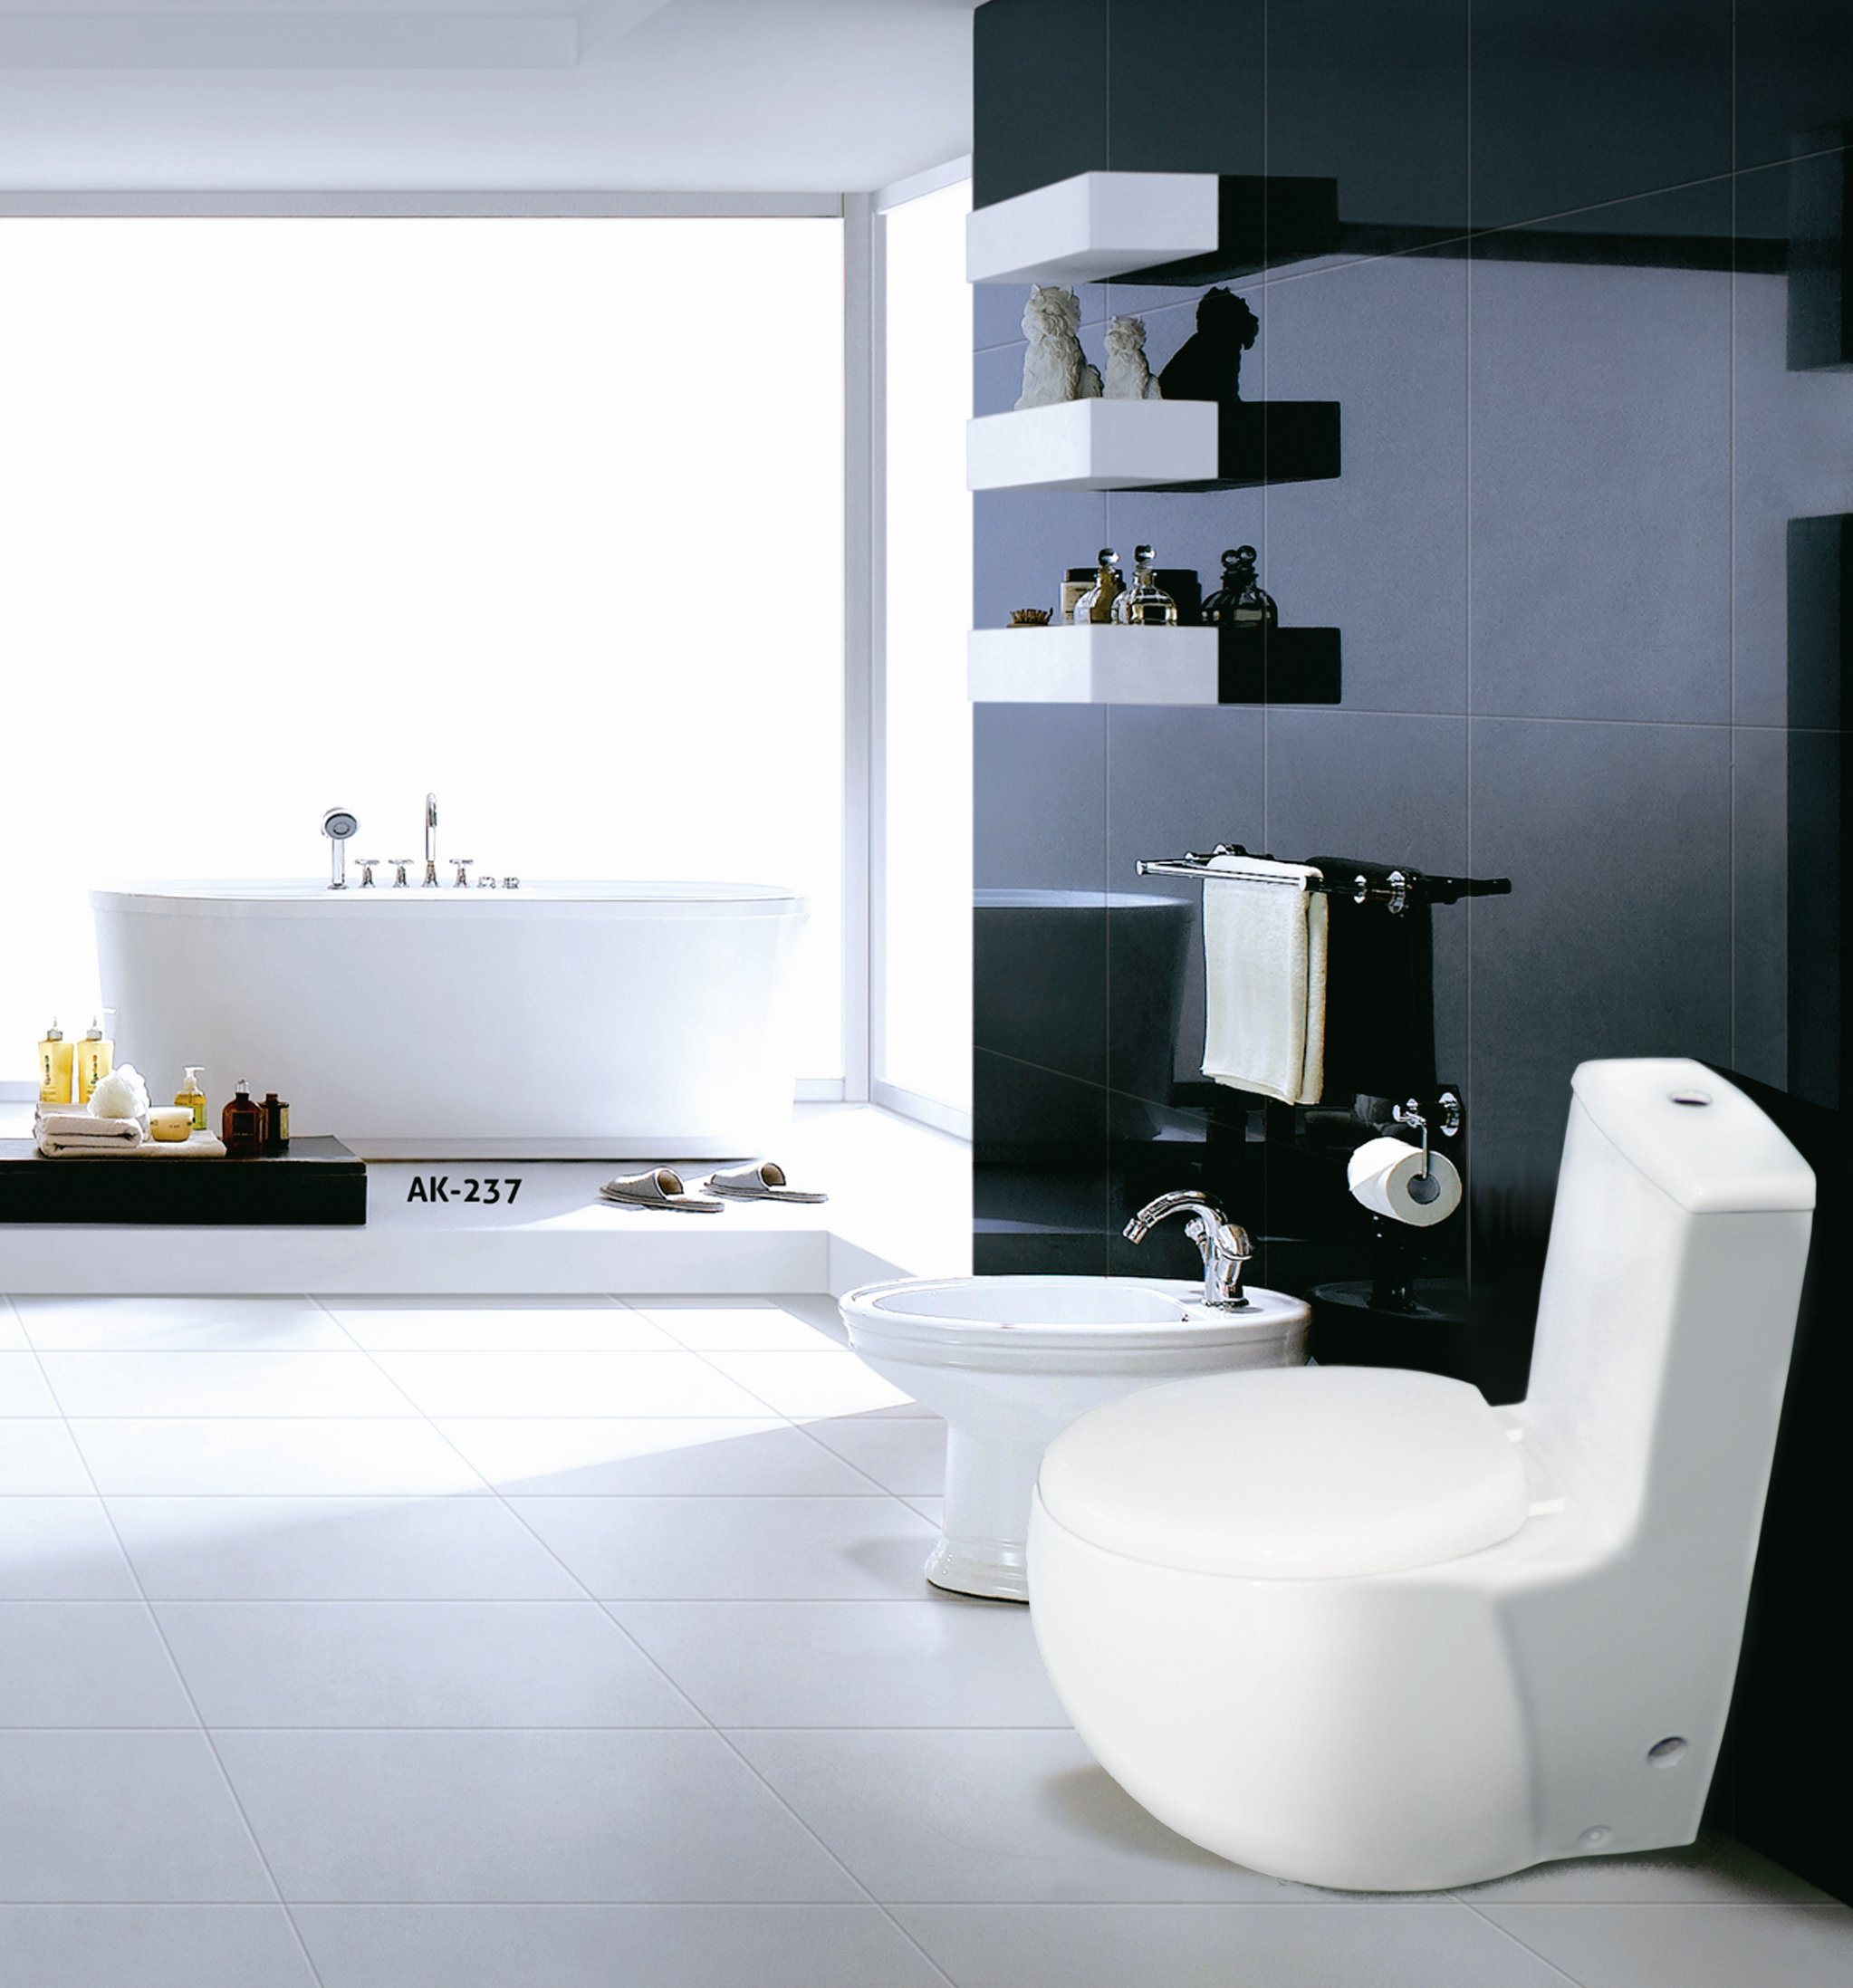 Euroto Luxury Toilet for Bathroom Toilet Bowls, Toilets, and Toilet Seats. Smart Toilet (Compact Elongated, Dual Flush(Siphonic)) by EUROTO (Image #4)